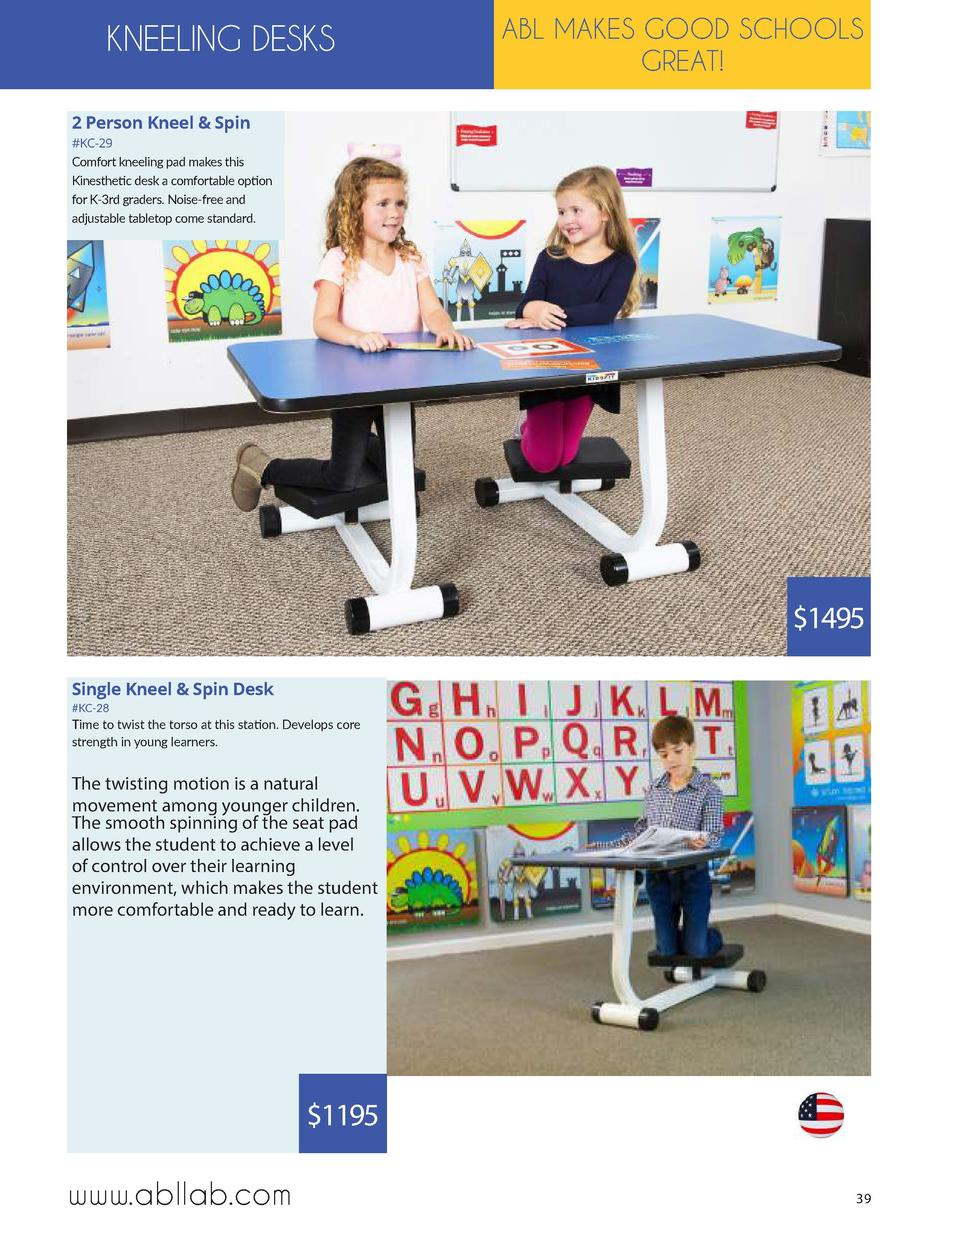 KNEELING DESKS  ABL MAKES GOOD SCHOOLS GREAT   2 Person Kneel   Spin  KC-29 Comfort kneeling pad makes this Kinesthetic de...